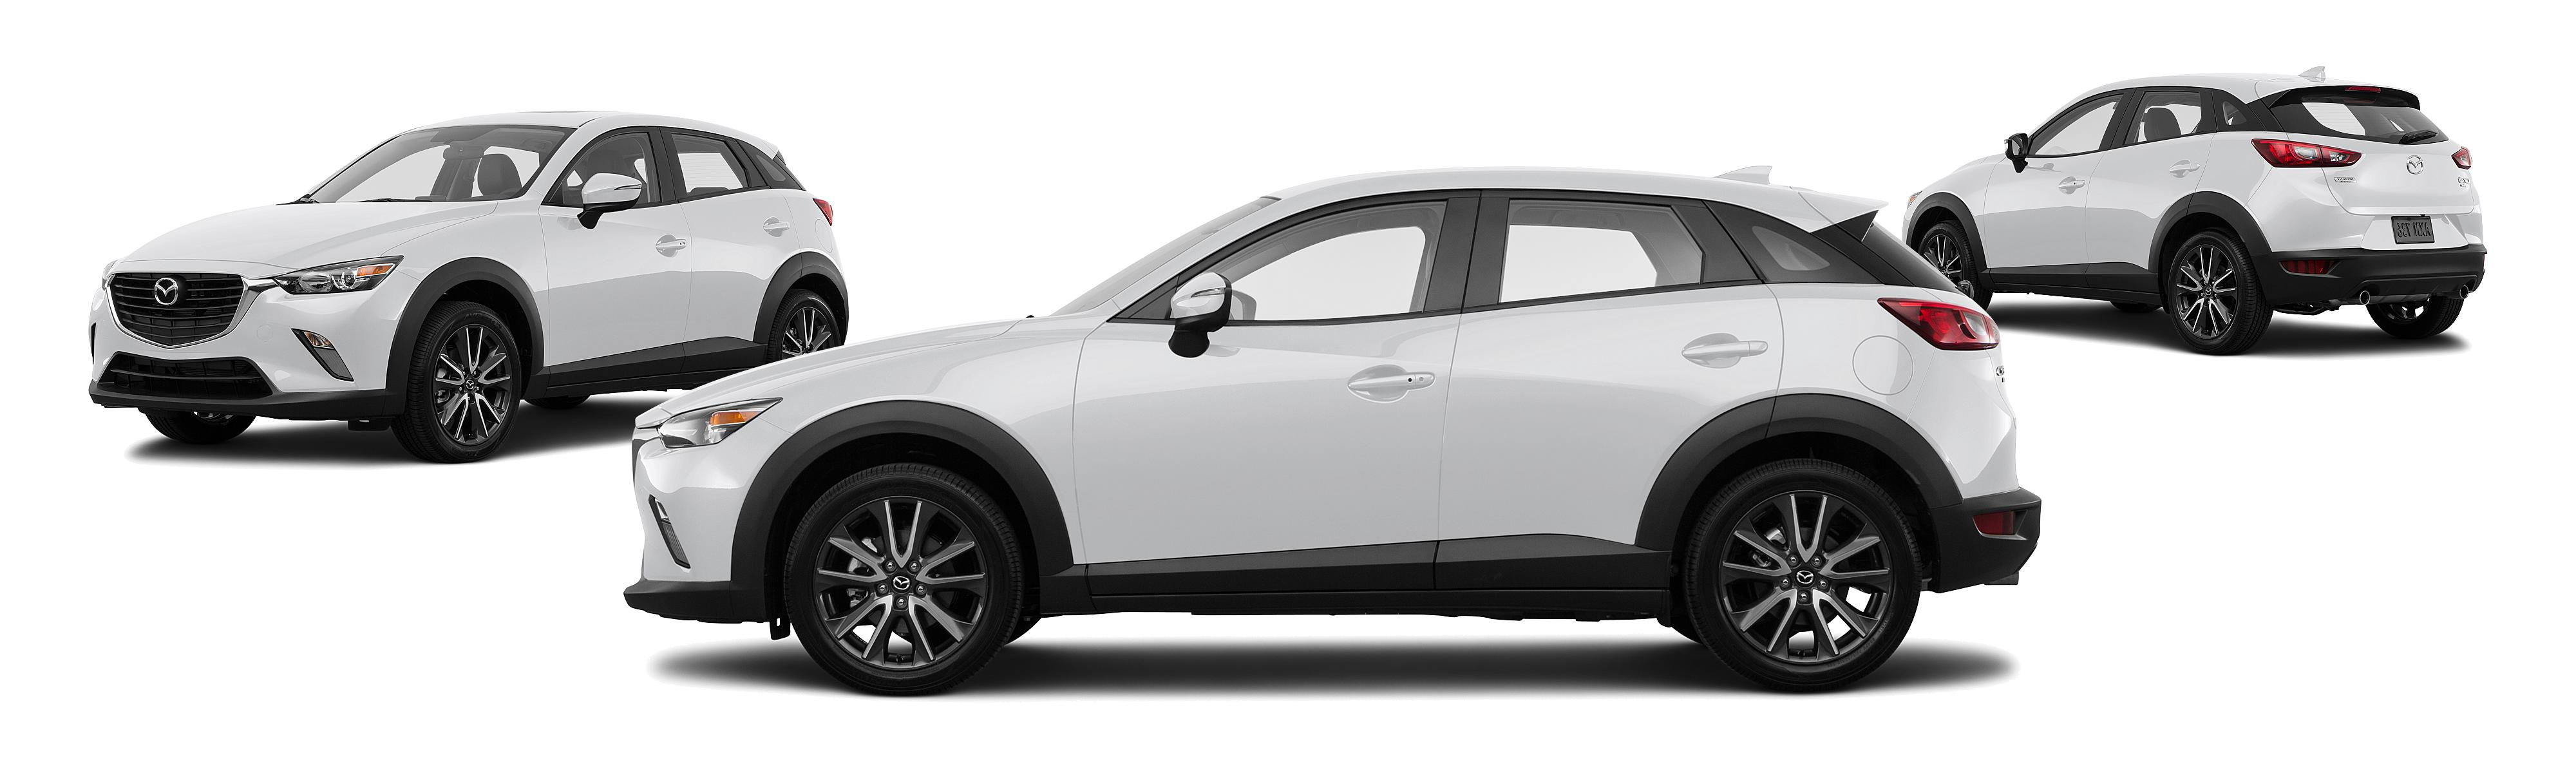 Flood Ford Narragansett >> 2016 Mazda Cx 3 Pricing For Sale Edmunds | Autos Post